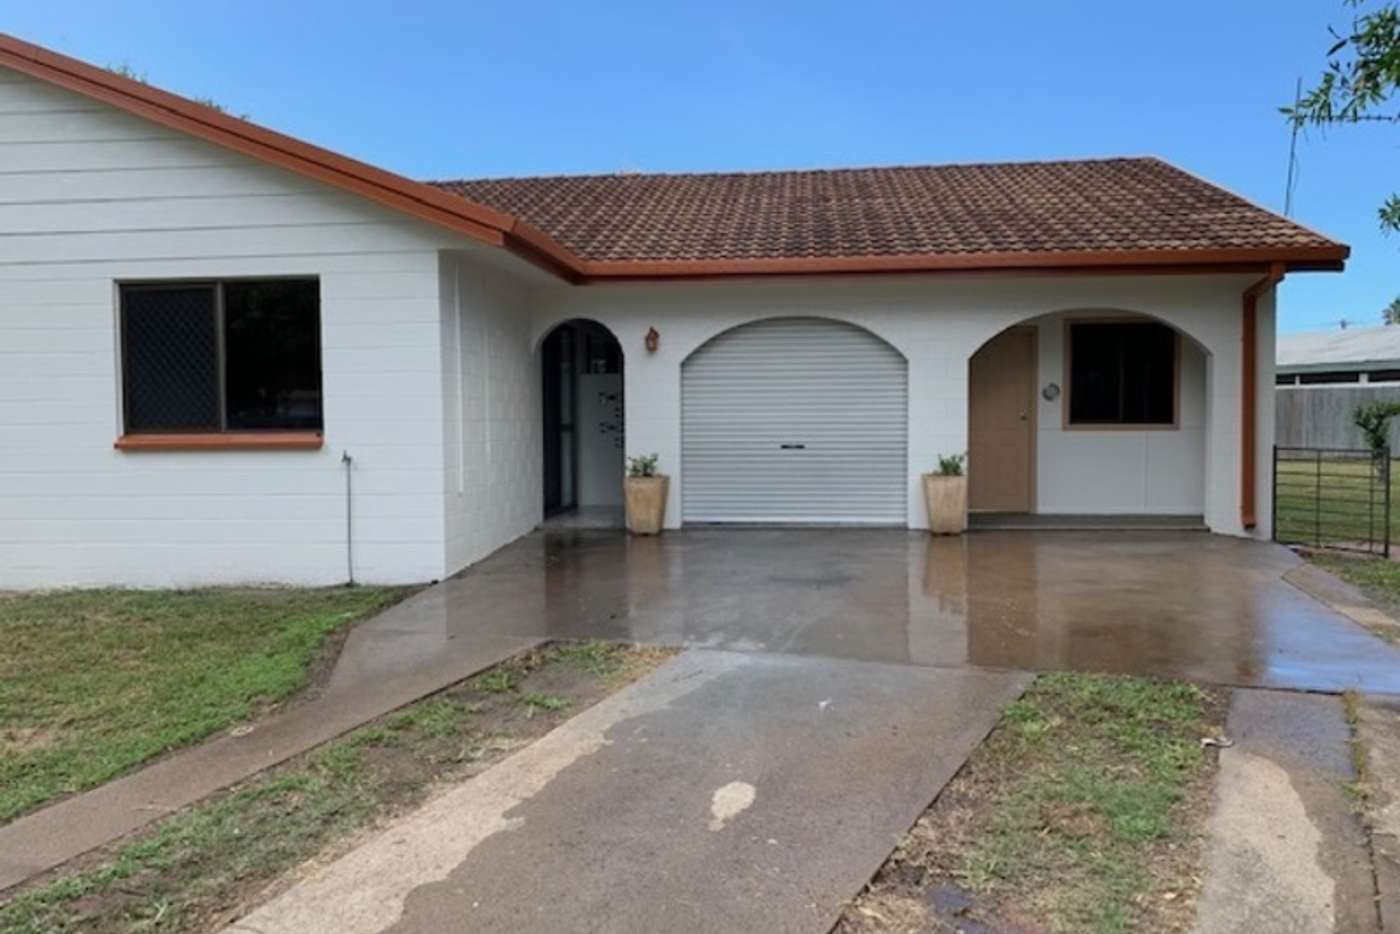 Main view of Homely house listing, 14 Mathiesen Street, Annandale QLD 4814